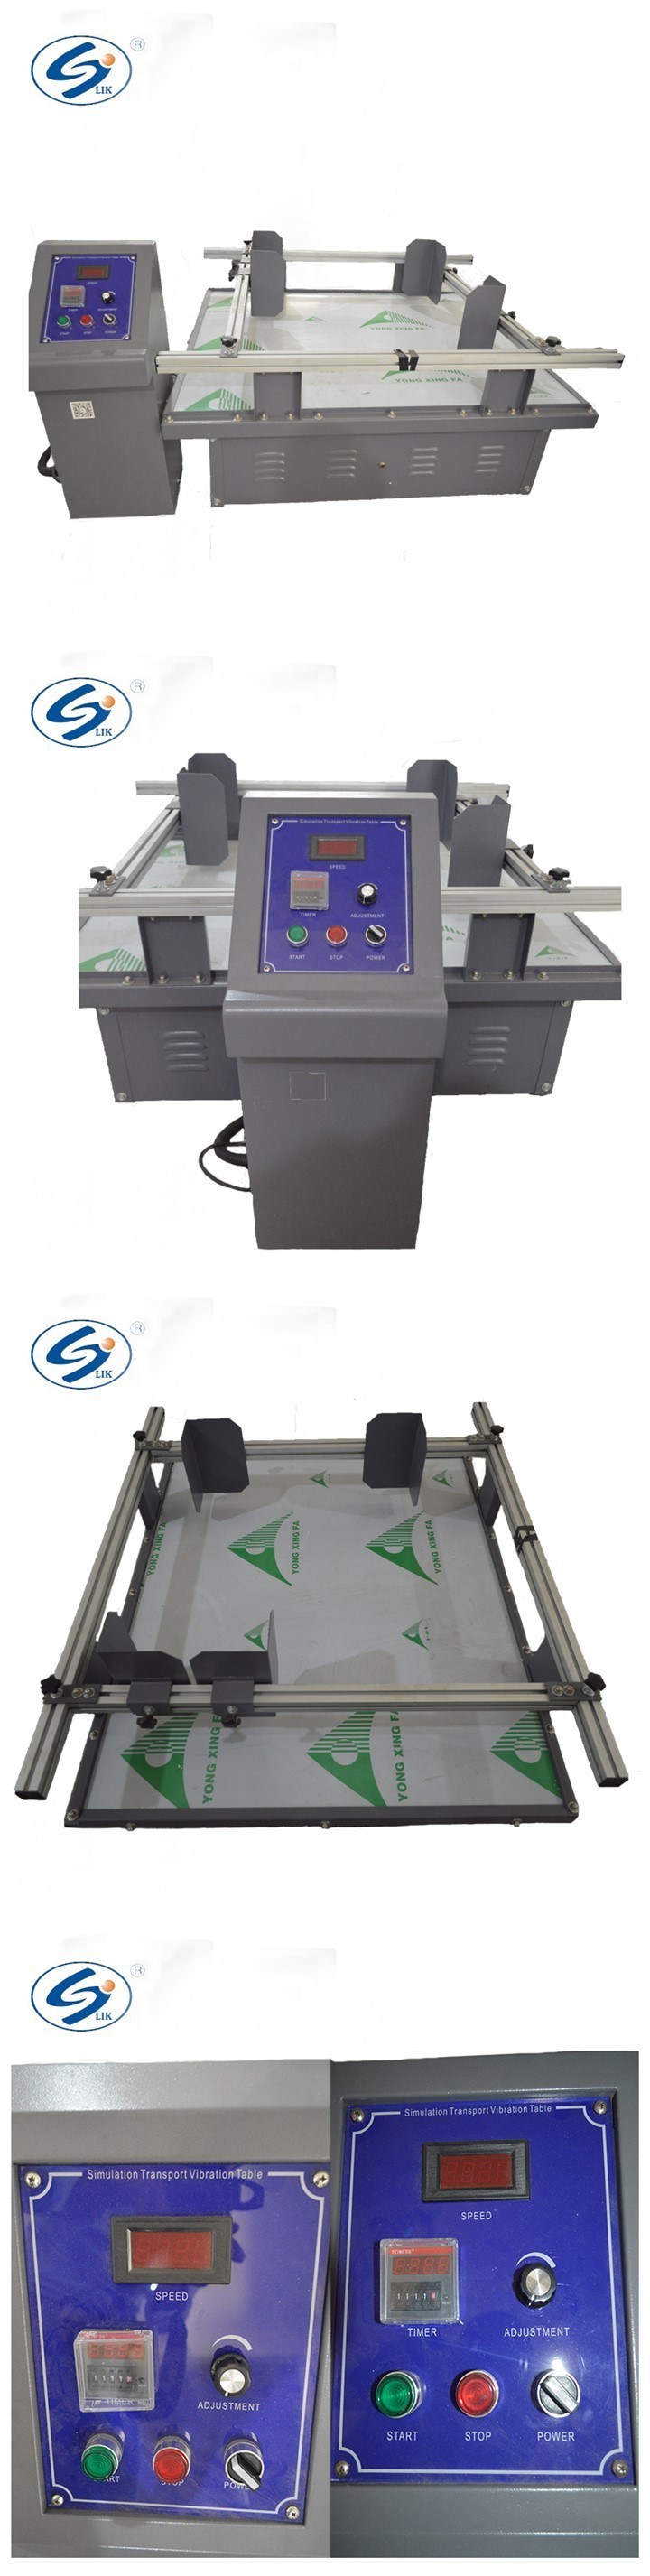 Carton Box Package Horizontal Vertical Simulation Transportation Vibration Test Machine